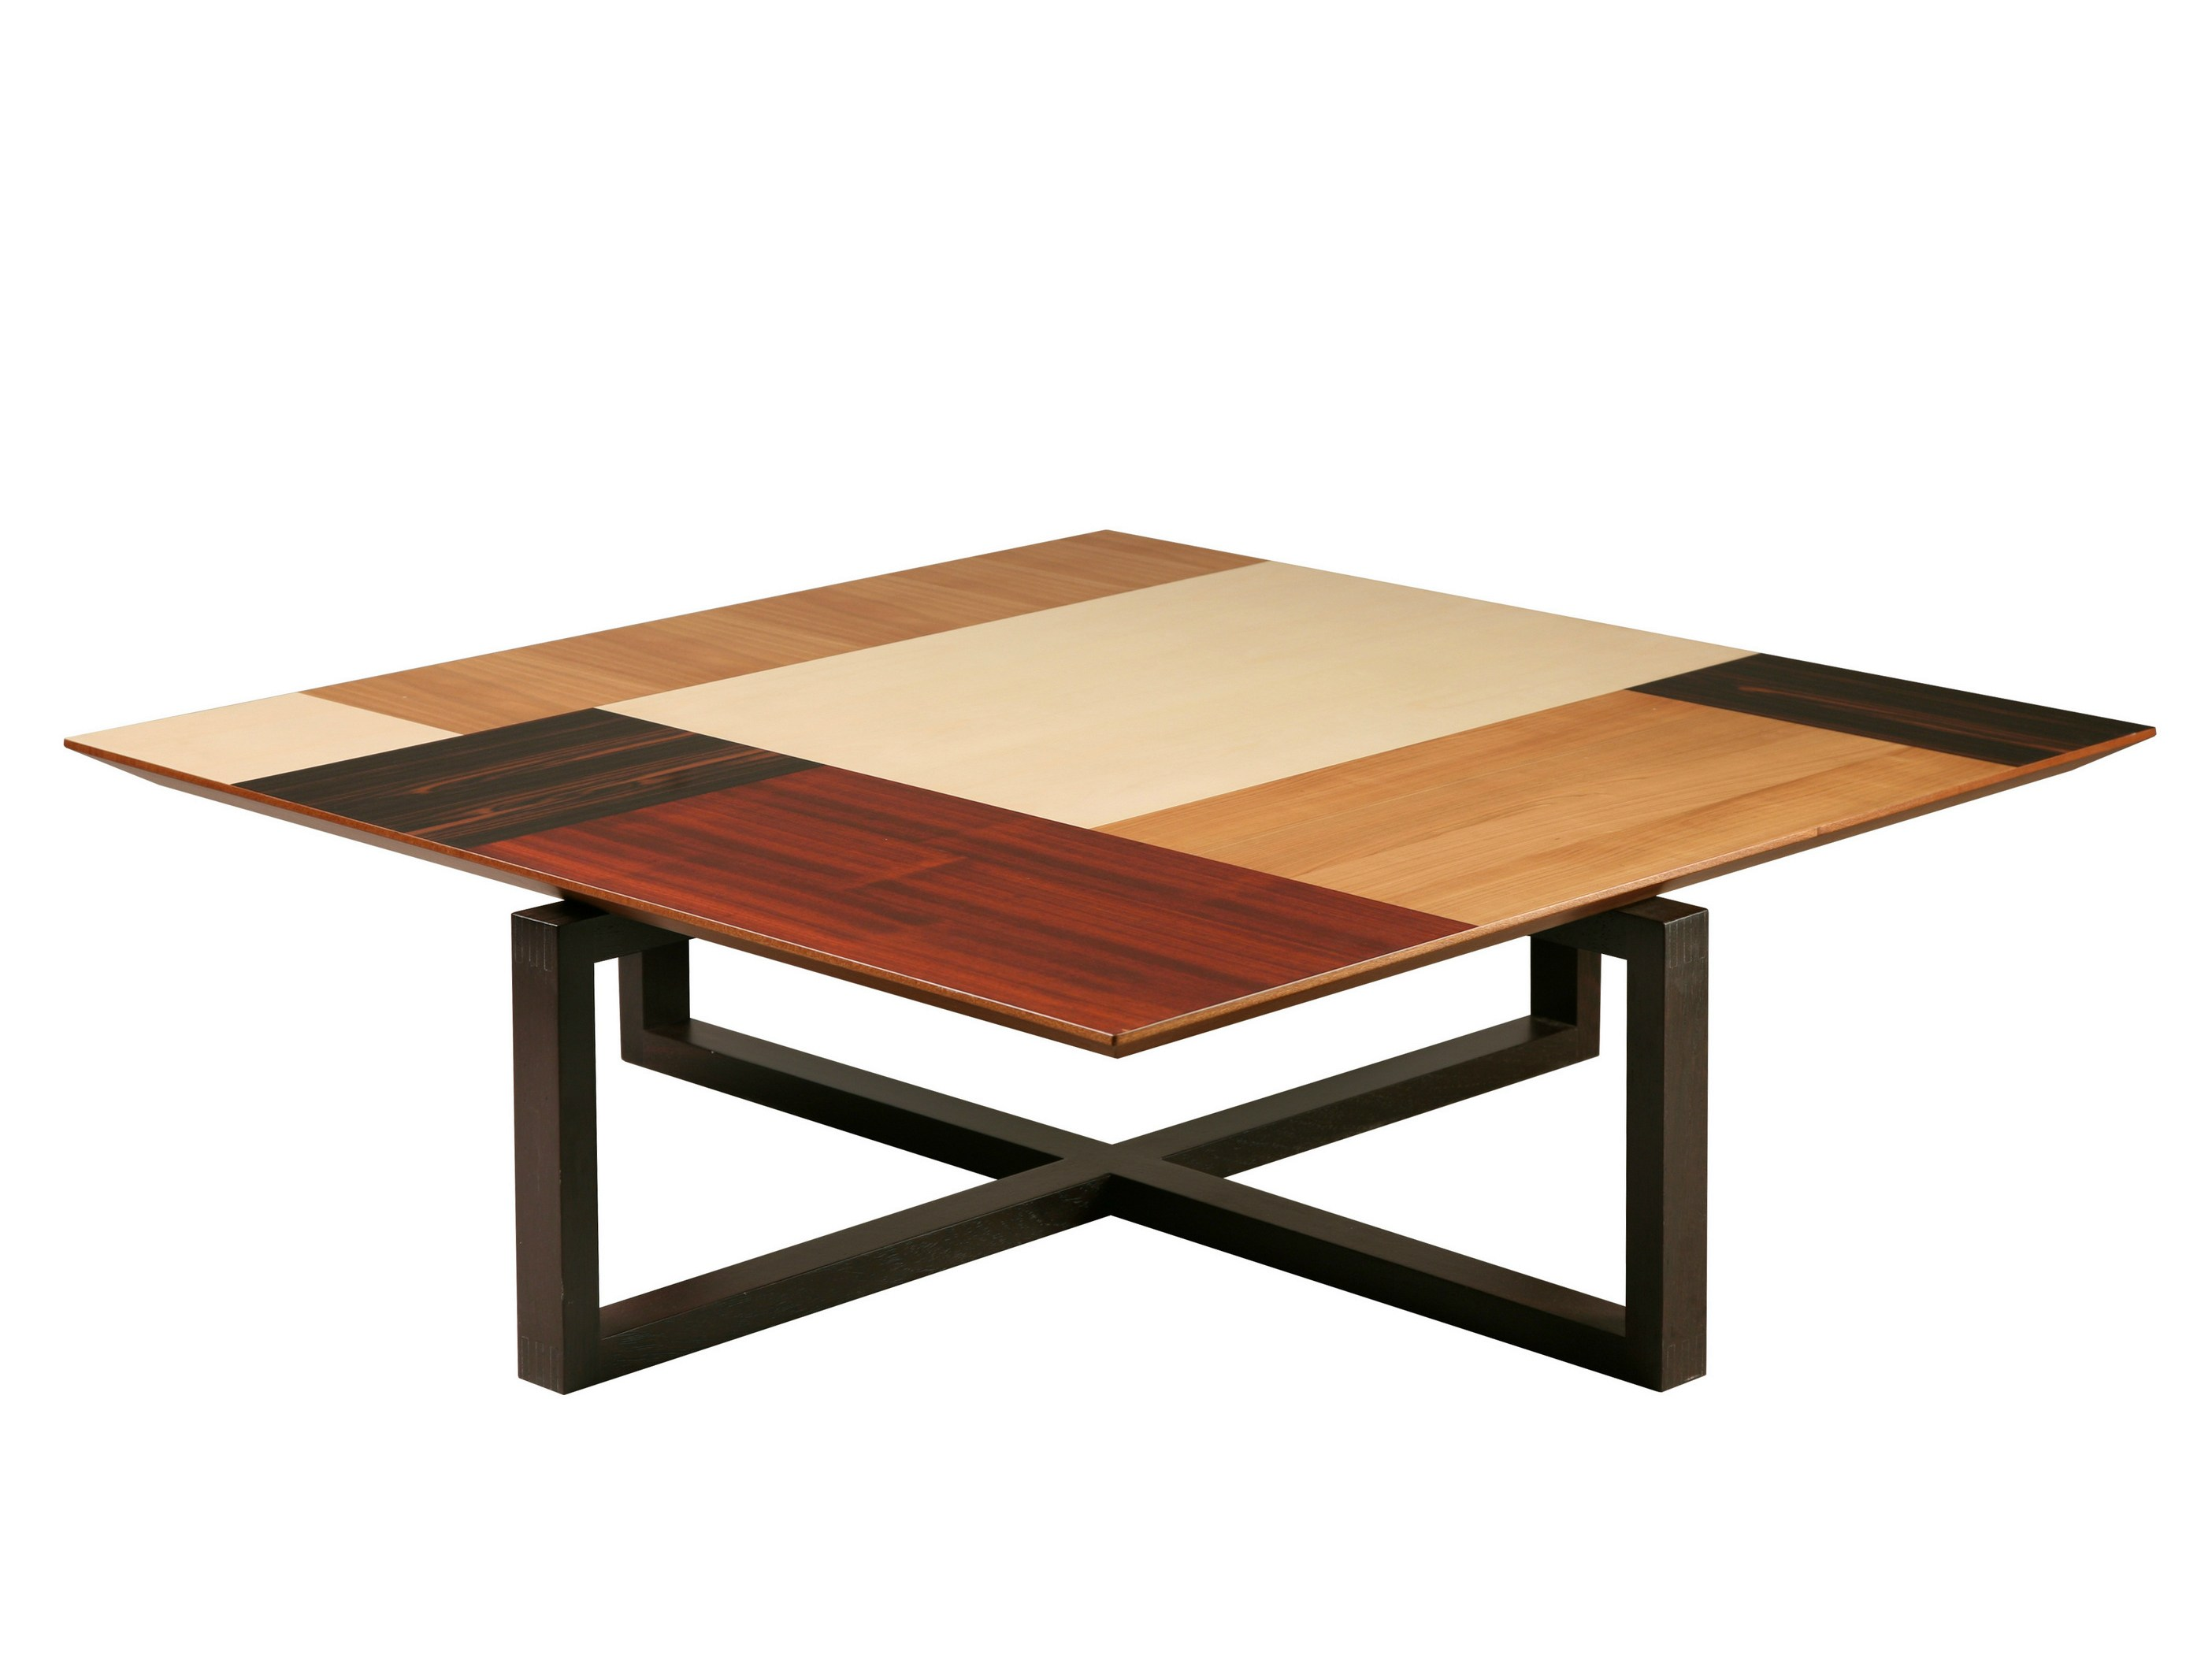 Patchwork square coffee table by morelato design maurizio duranti Low coffee table square